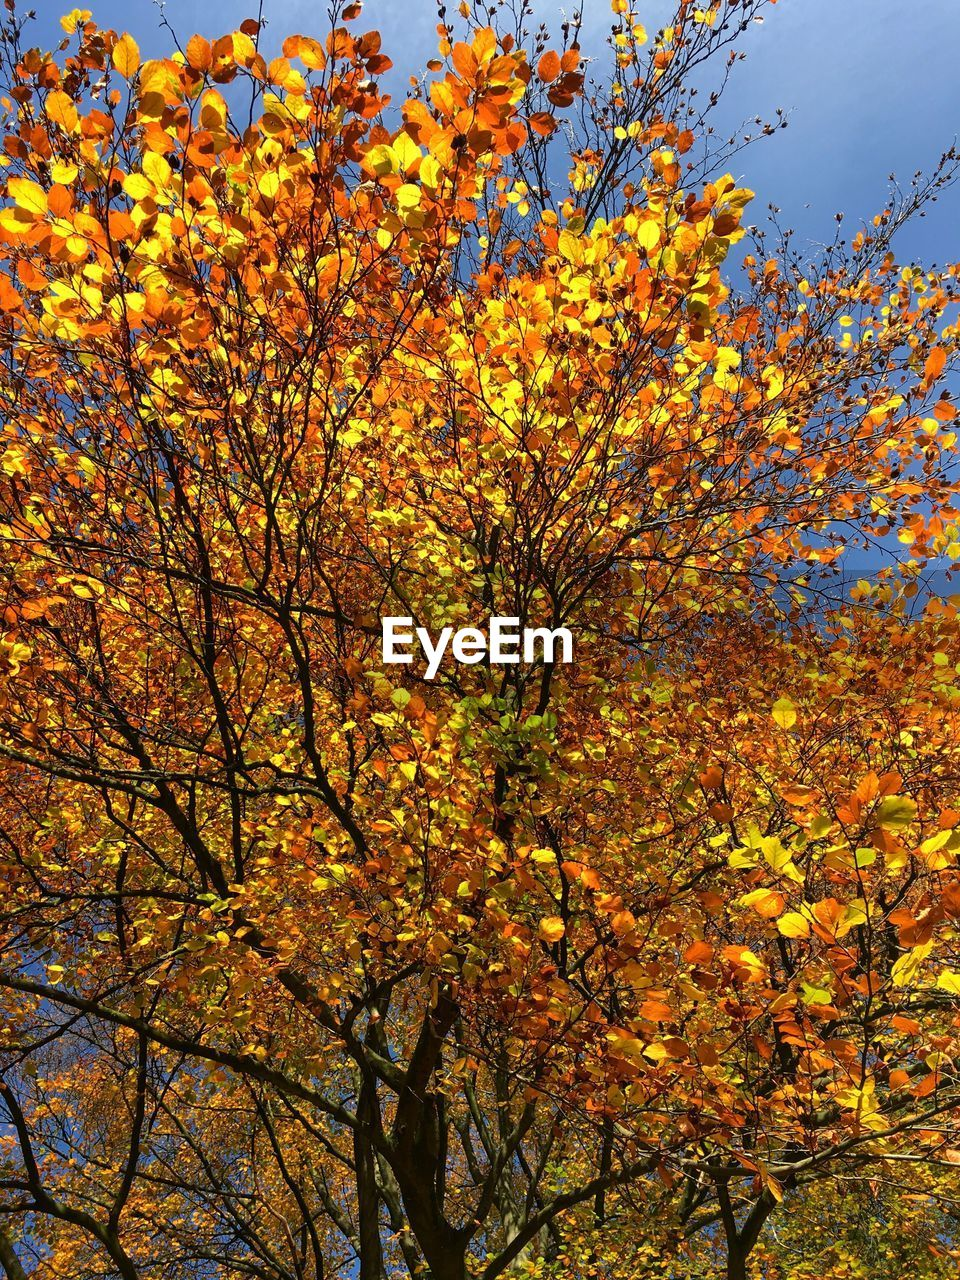 tree, beauty in nature, autumn, nature, growth, branch, flower, blossom, no people, low angle view, change, day, fragility, tranquility, outdoors, scenics, springtime, freshness, sky, close-up